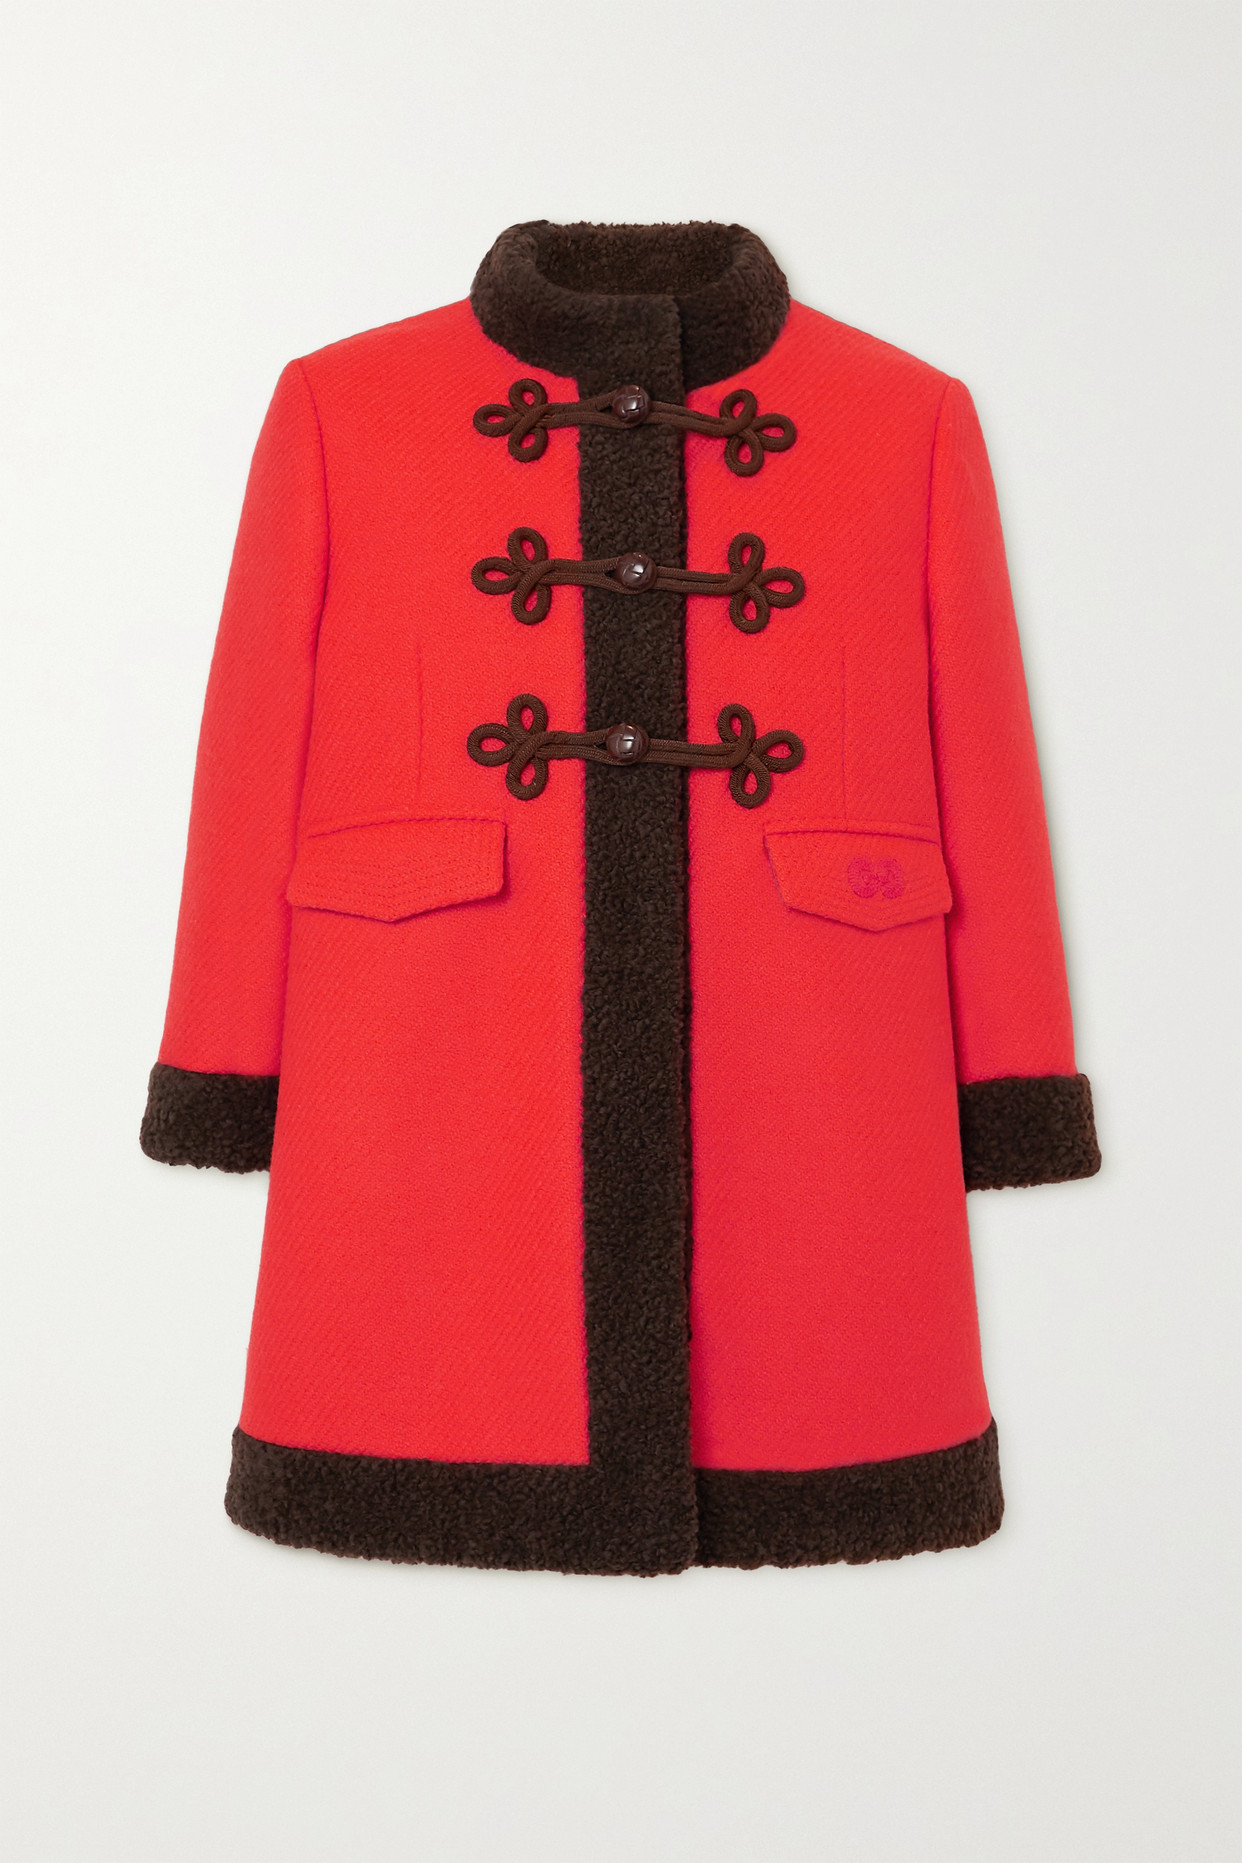 GUCCI - Faux Shearling-trimmed Wool Coat - Red - IT40